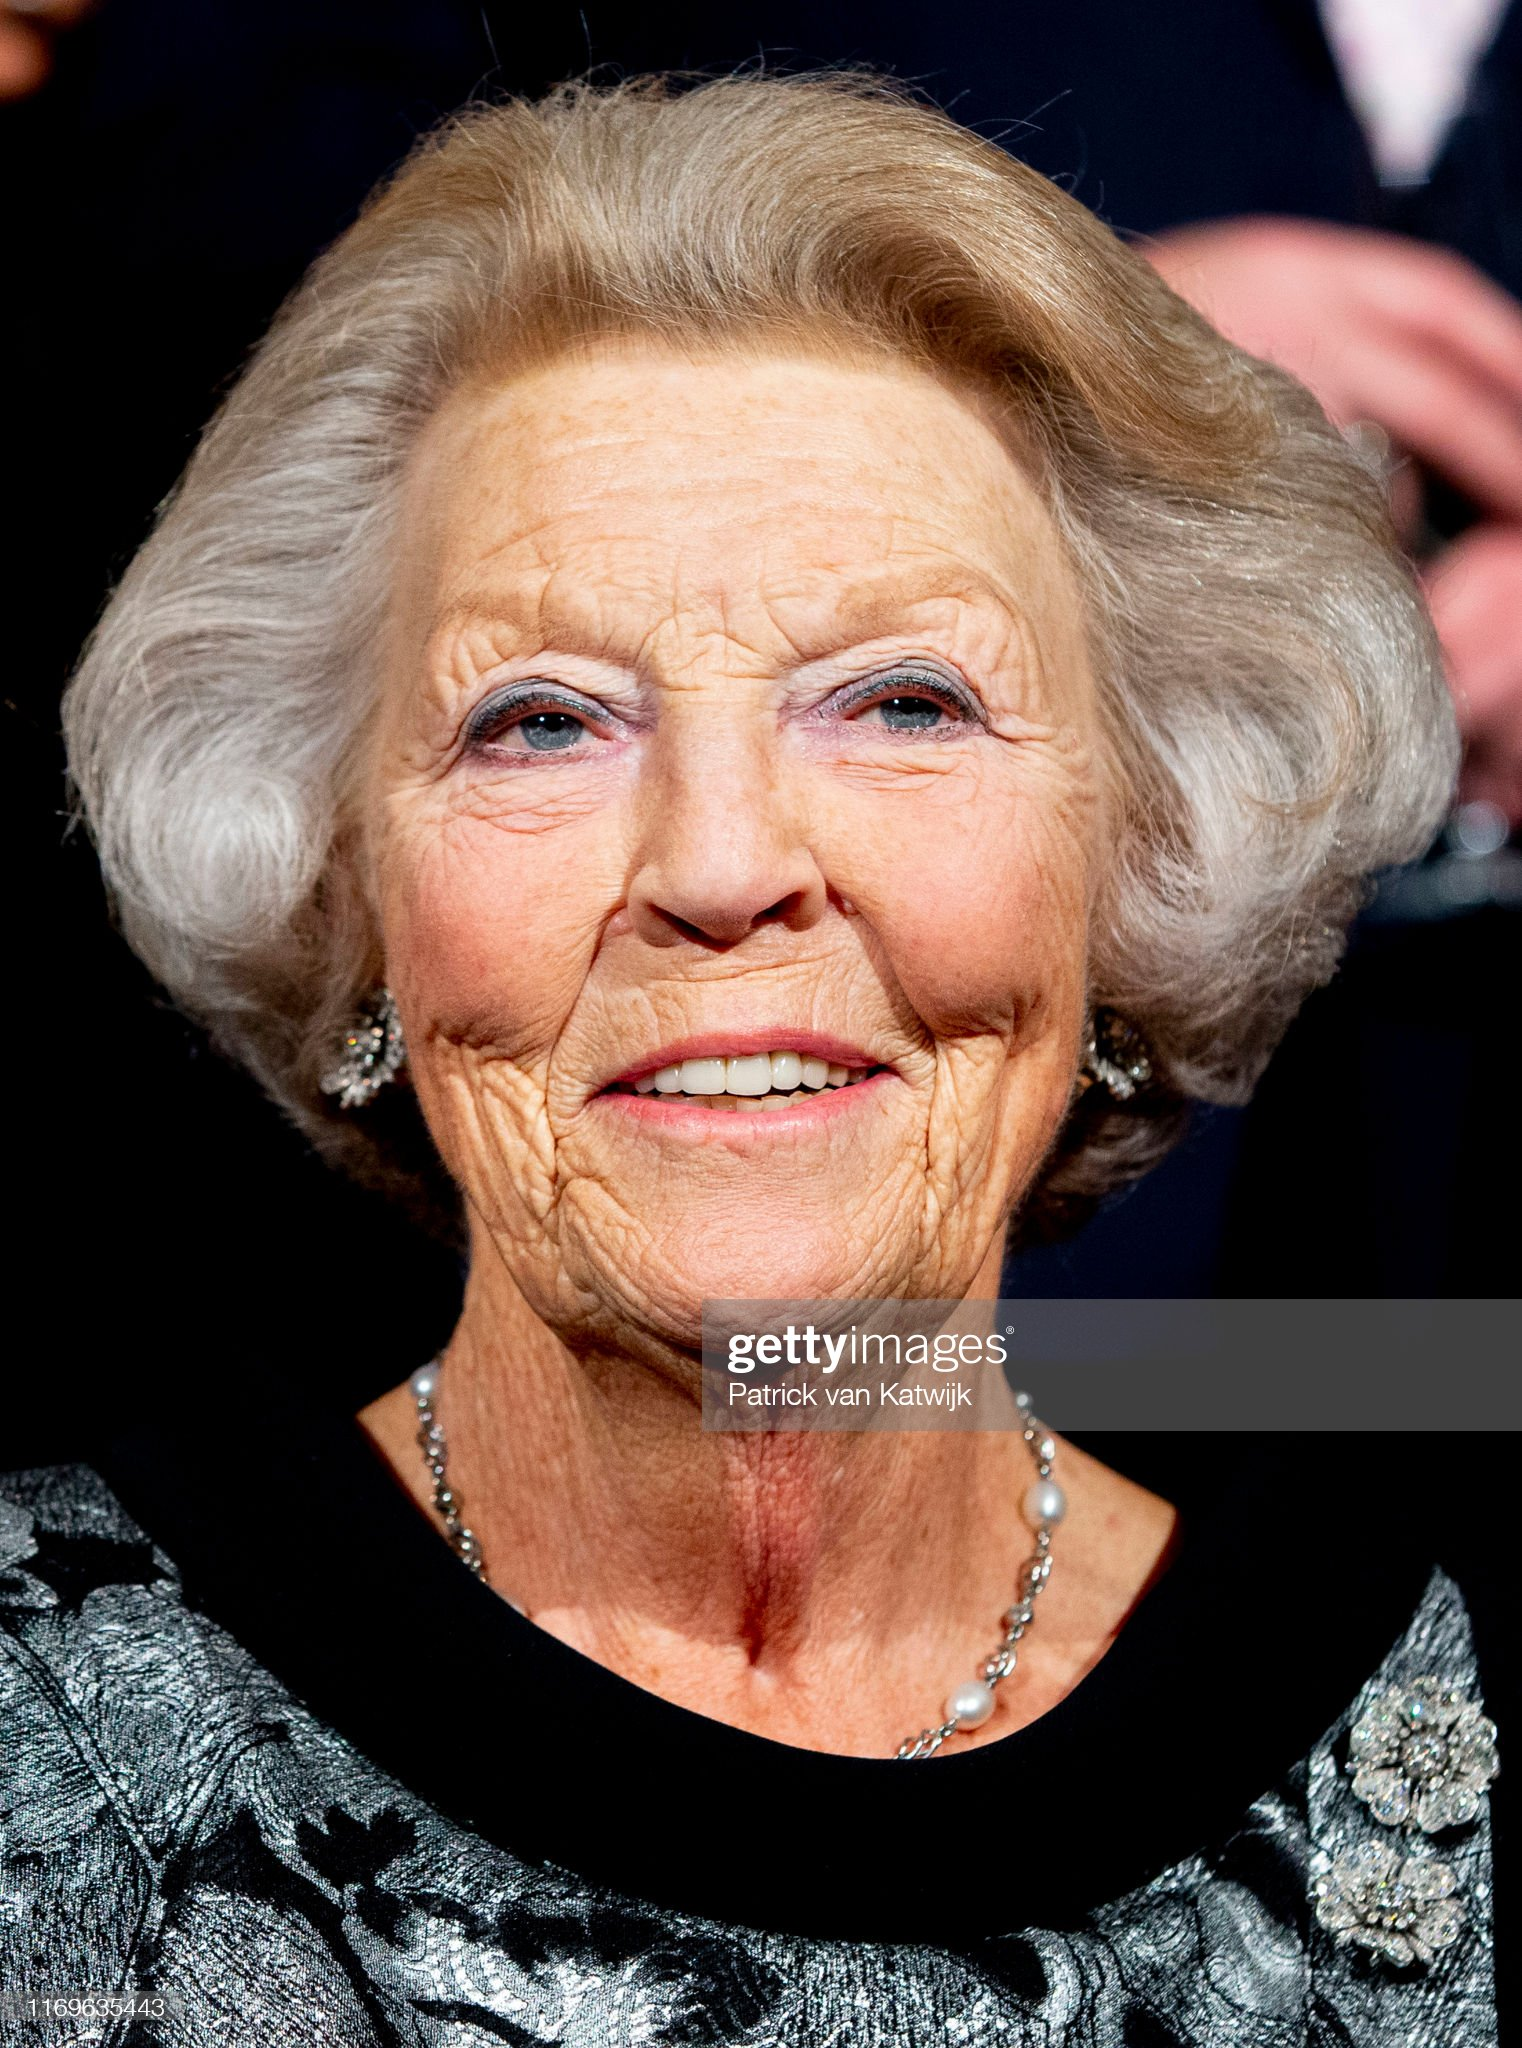 Princess Beatrix Of The Netherlands Visits Alvin Aley American Dance Performance in Rotterdam : News Photo